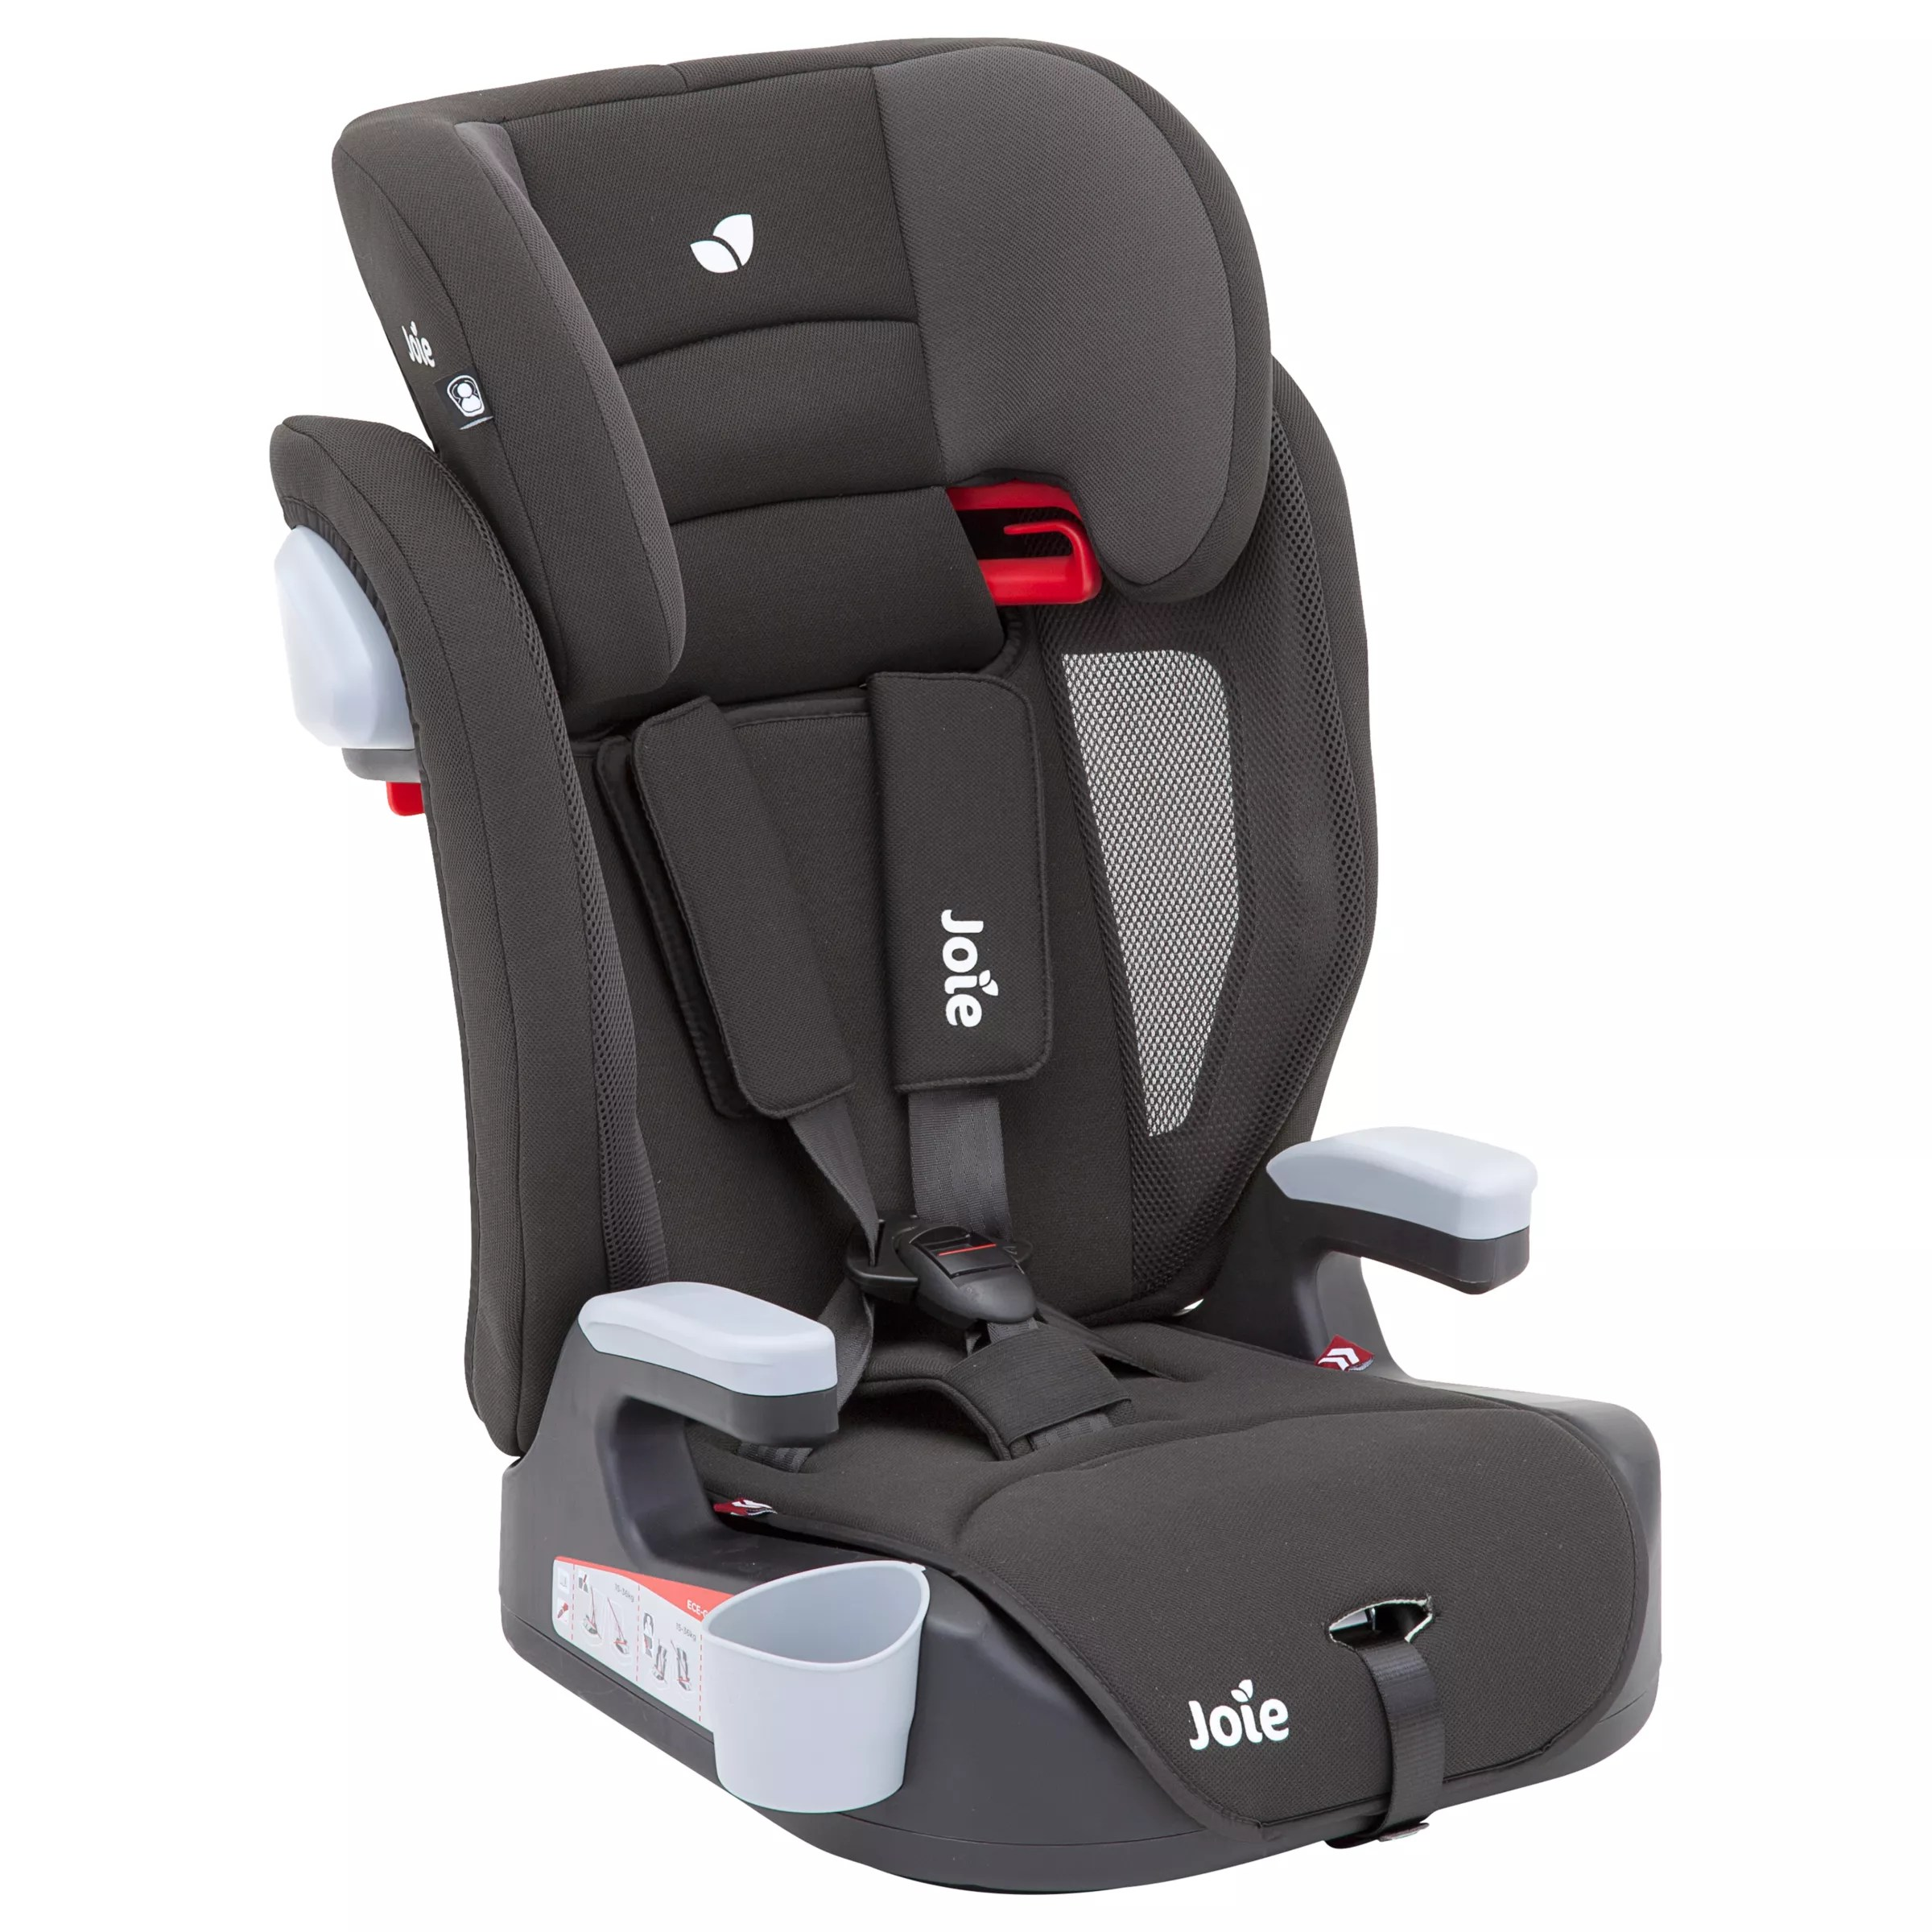 Joie Isofix Base Uk Joie Baby Elevate Group 1 2 3 Car Seat Two Tone Black